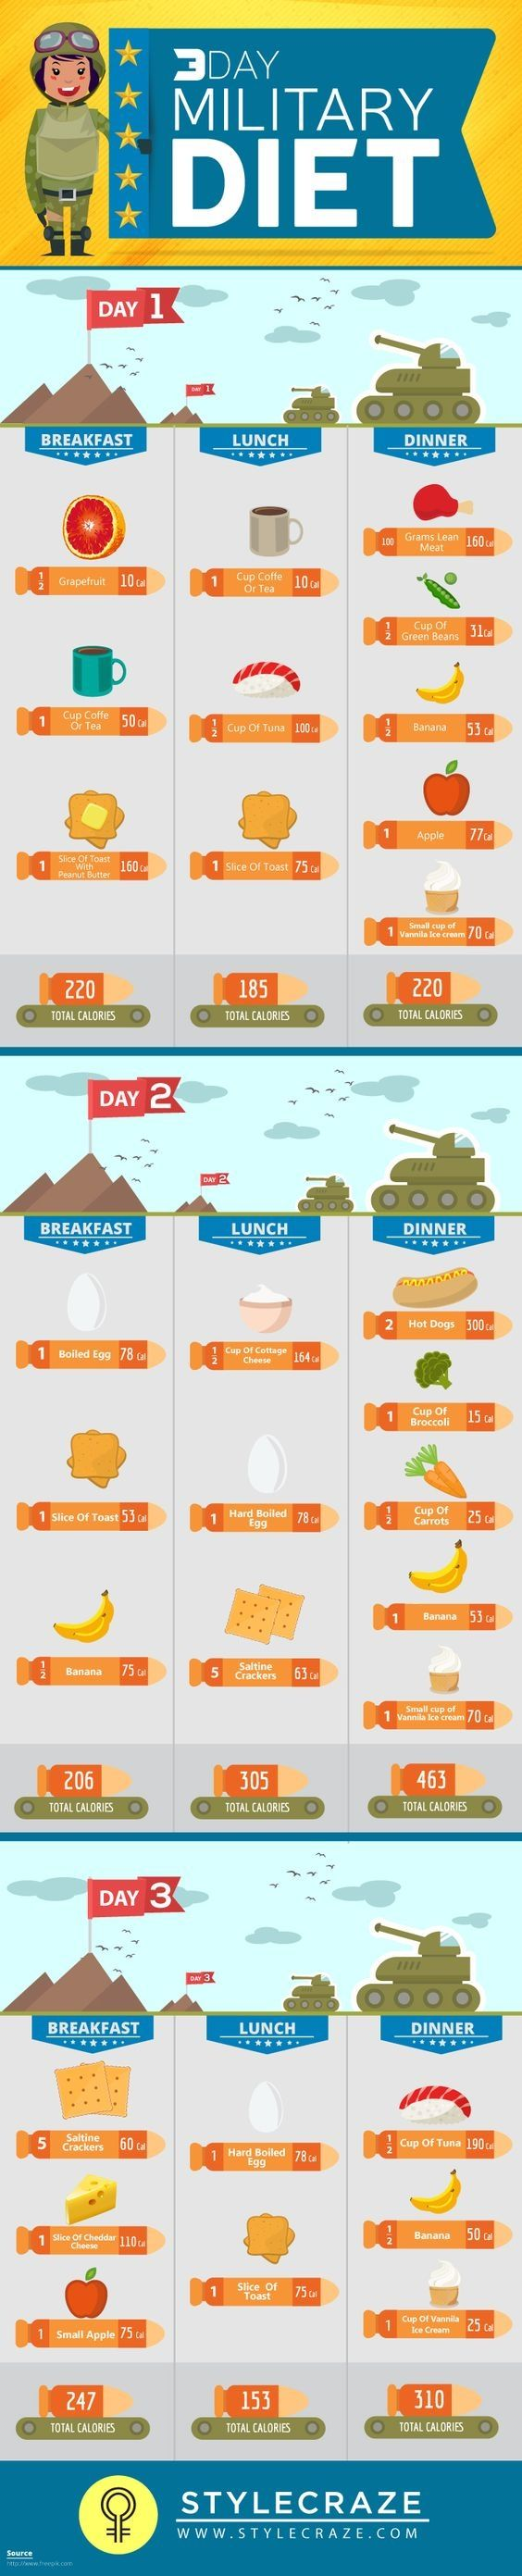 The Army Diet, or the 3-day diet, is a fast way to lose up to 15 pounds a week. If you only have a week or so to fit into that little black dress, the ArmyDiet could be exactly what you are looking for. Warning: some of the food suggestions sound gross and beyond unconventional (thi #weightlossbeforeandafter